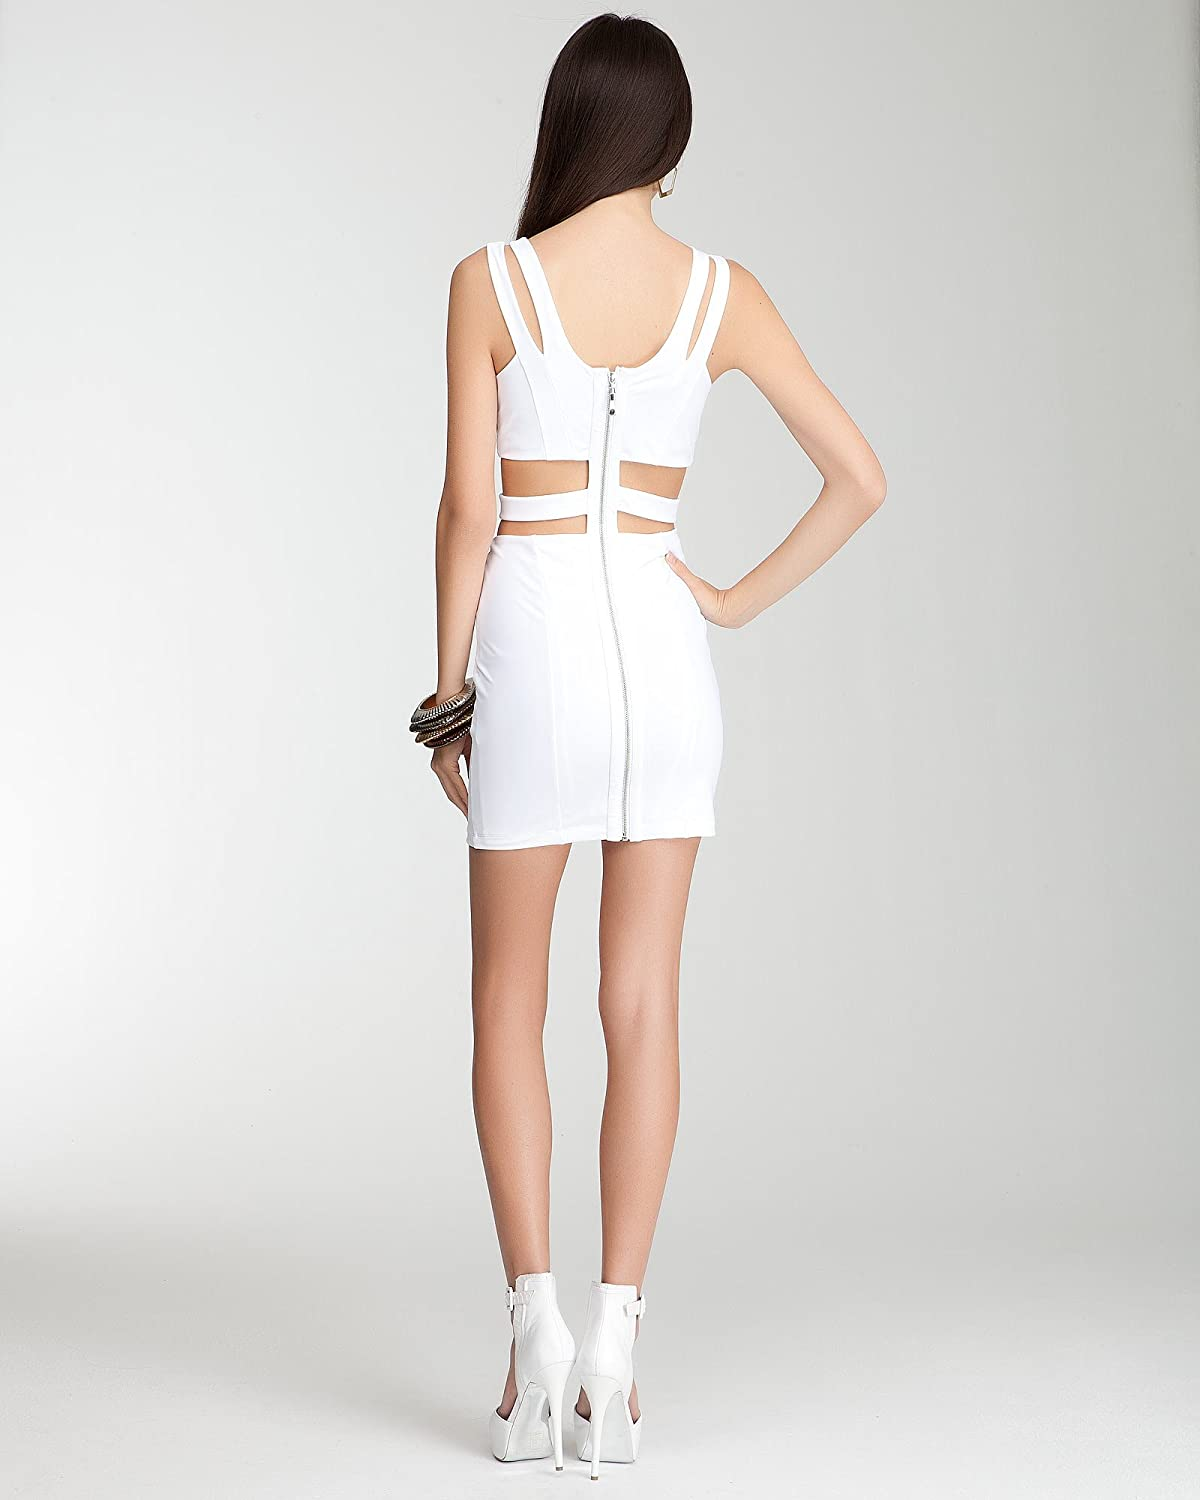 7adc8c229f BB Studded Cutout Bodycon Dress -Bebe Addiction Spcl Events/eve Dresses  White-s at Amazon Women's Clothing store: